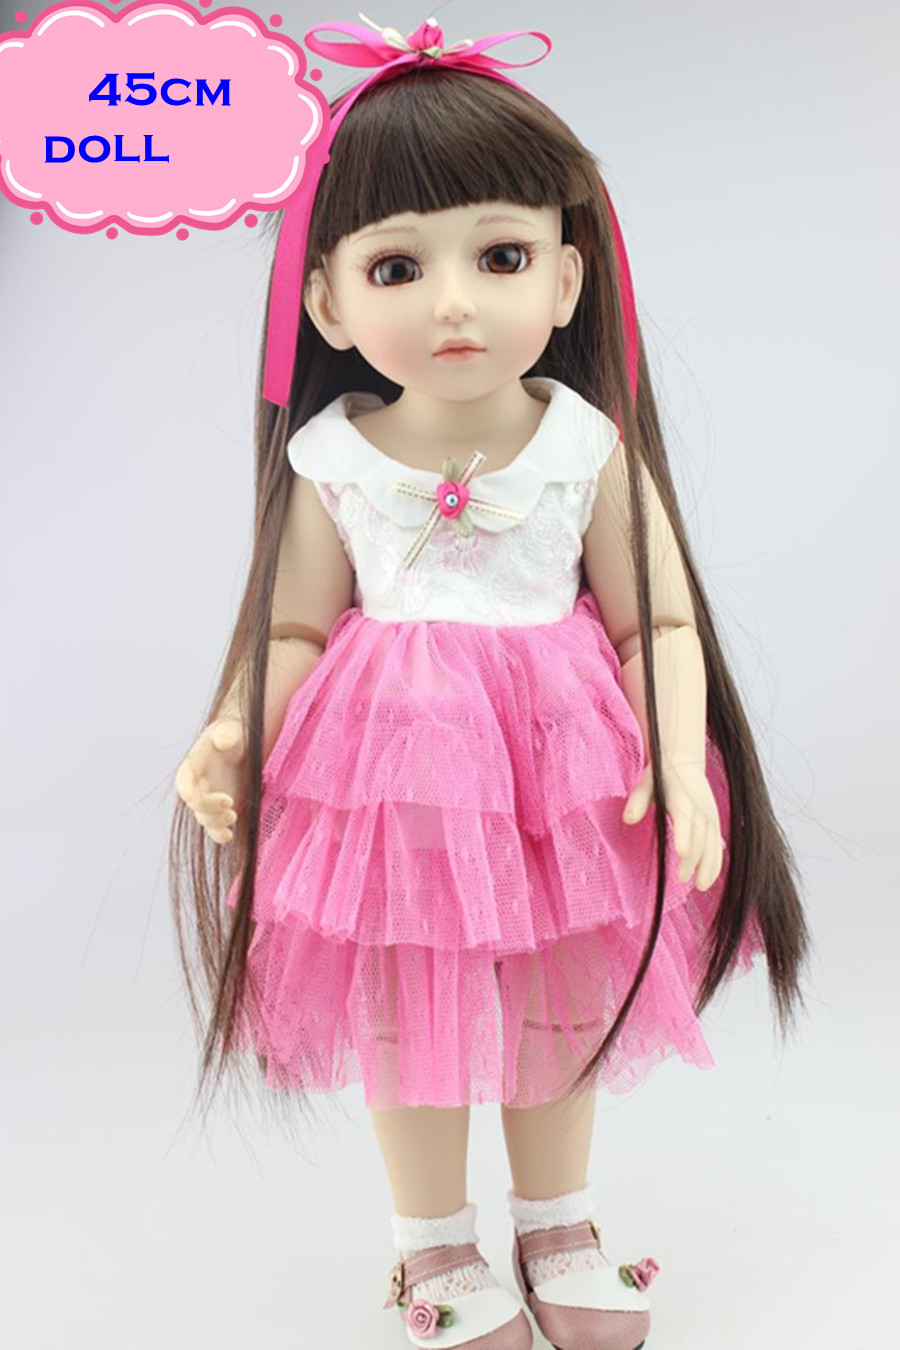 Latest Simulation SD/BJD Princess Doll About 18inch Made Of Full Silicone Vinyl Baby Dolls Toys Reborn For Kids Play Brinquedos handmade chinese ancient doll tang beauty princess pingyang 1 6 bjd dolls 12 jointed doll toy for girl christmas gift brinquedo